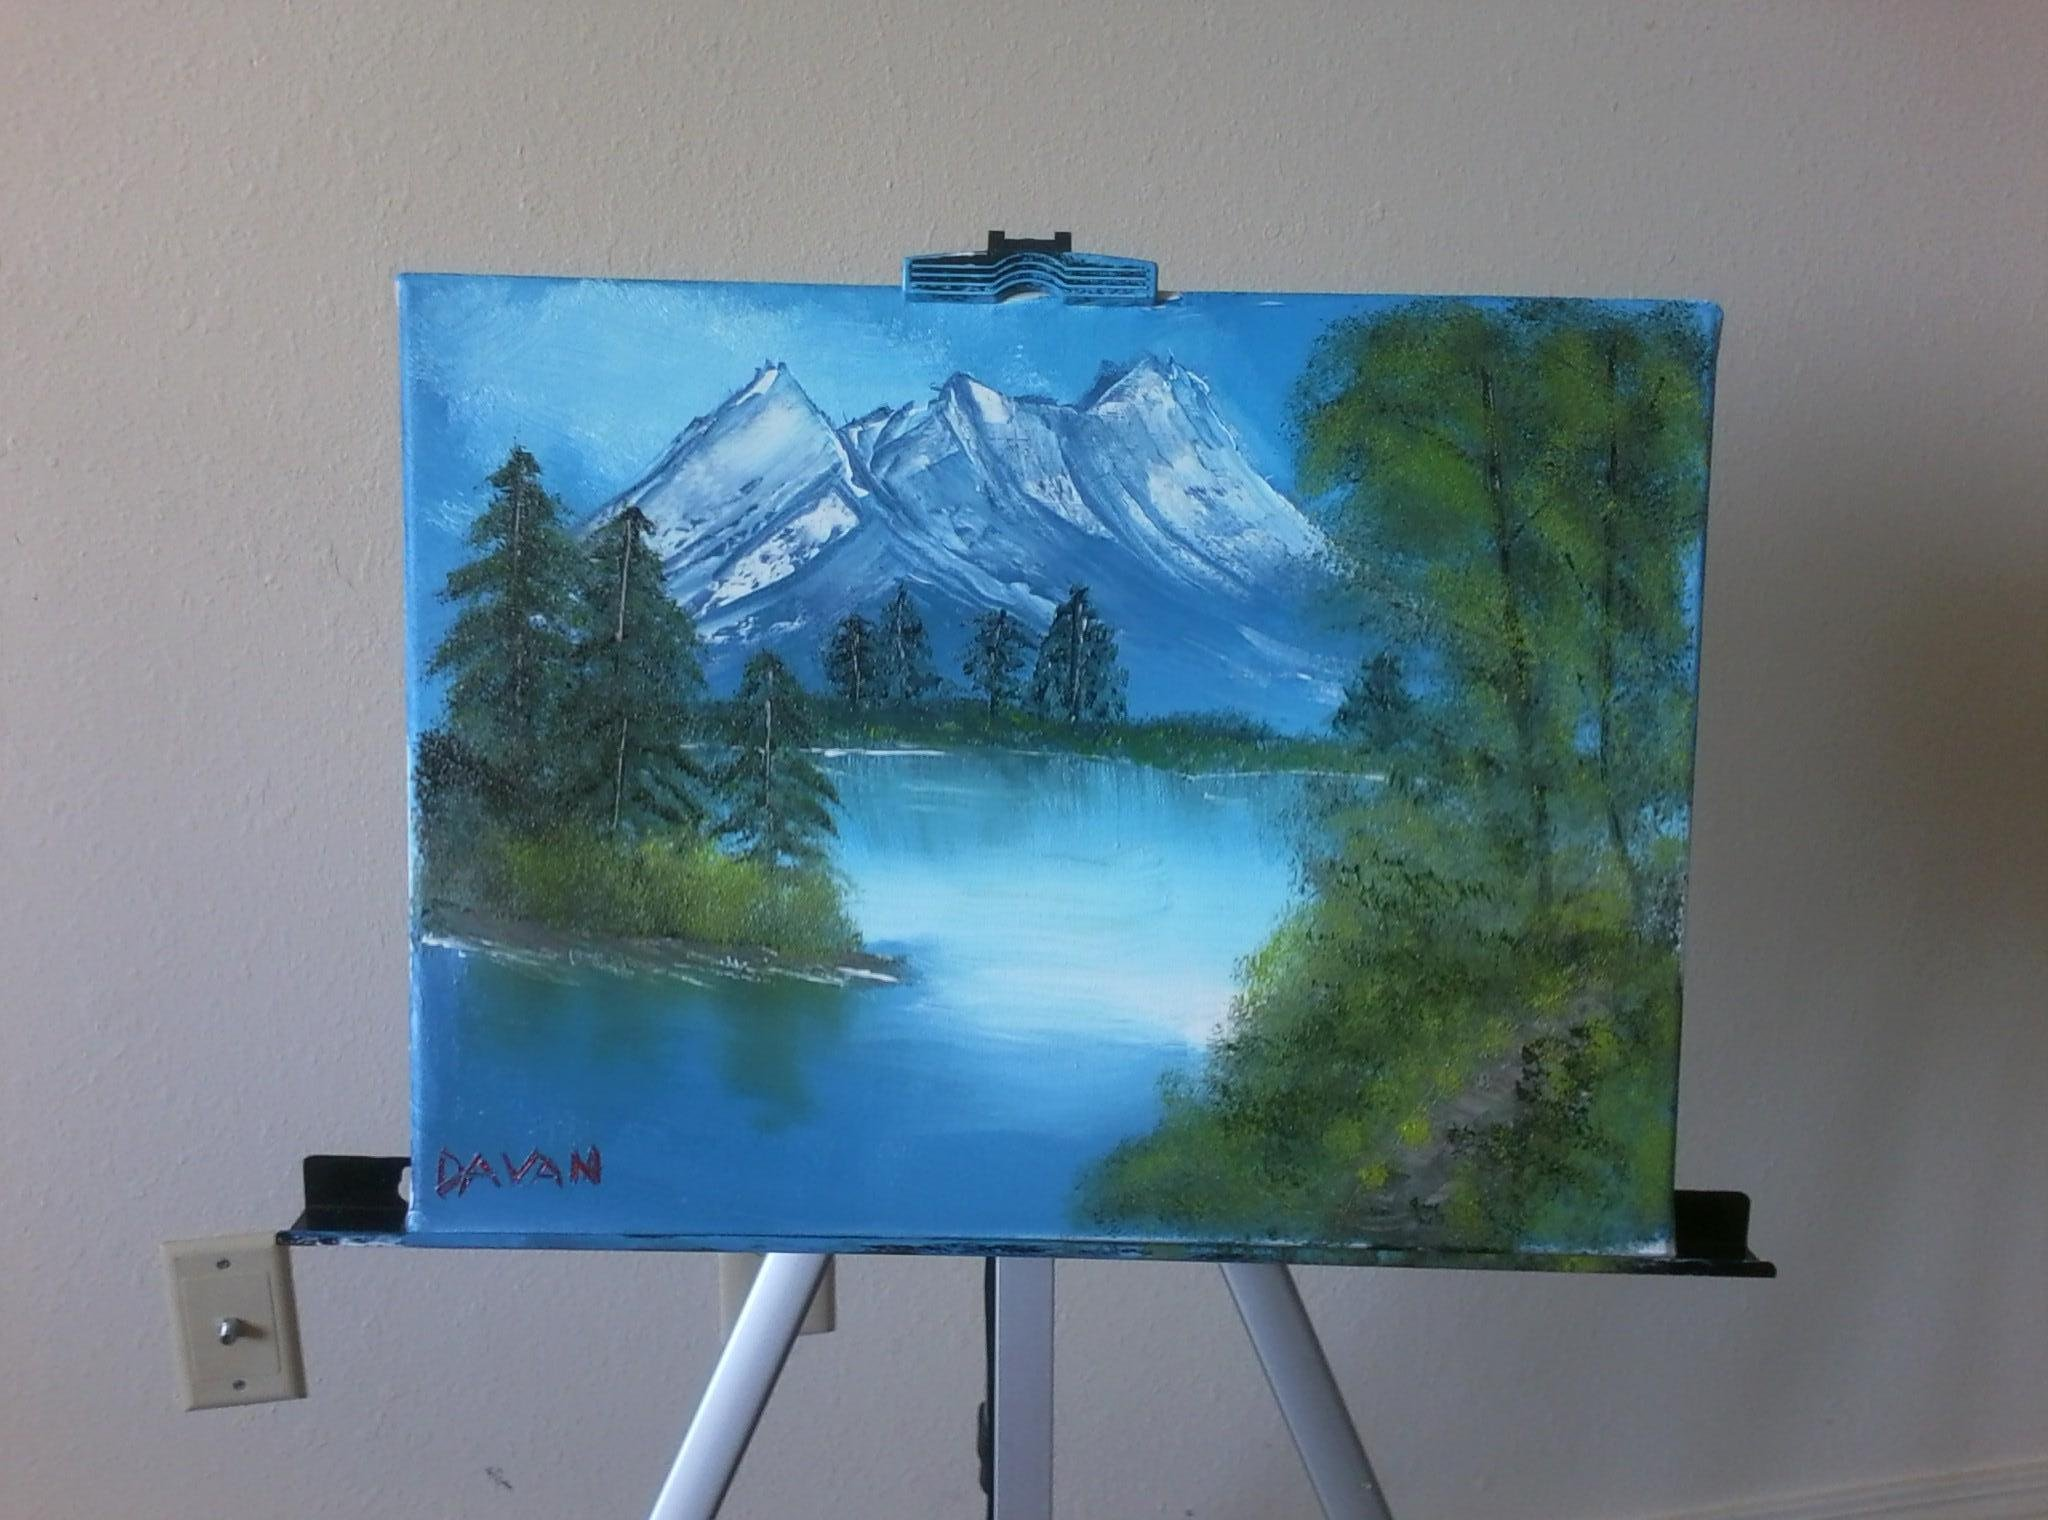 A 10 year old girl attempt at Bob Ross's The Joy of Painting. Not bad.